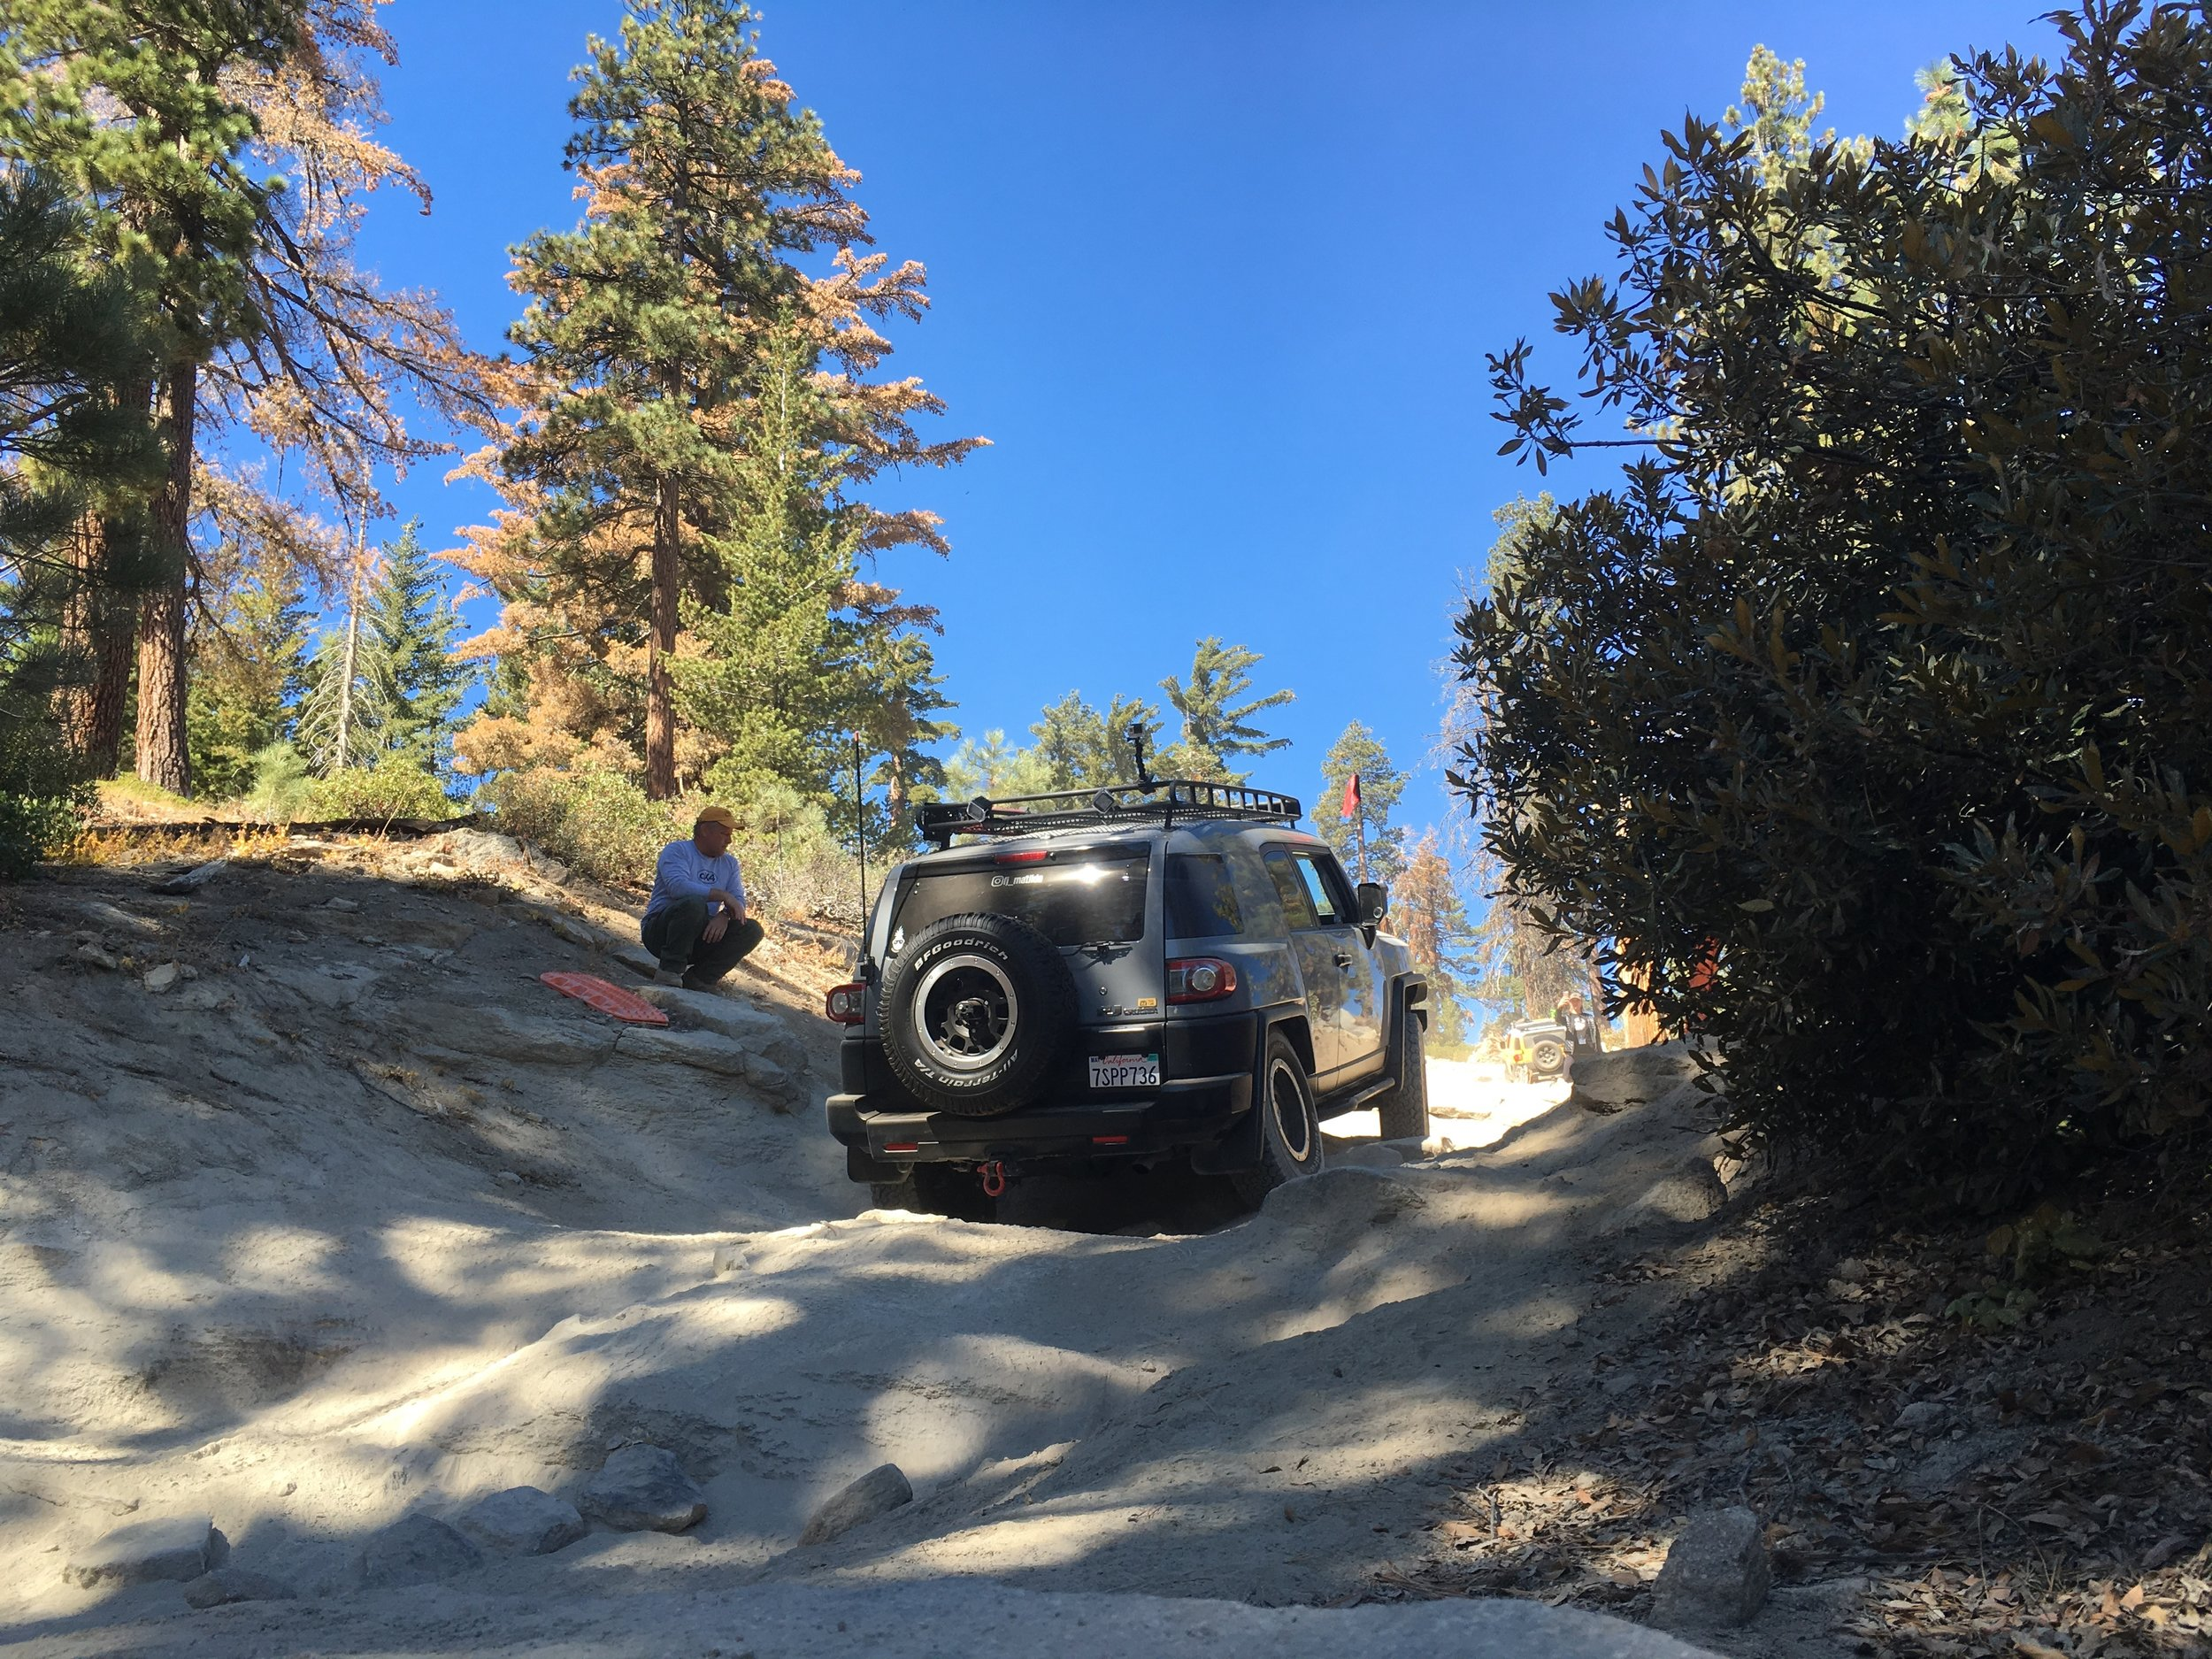 A little technical section on the way to the fire lookout.